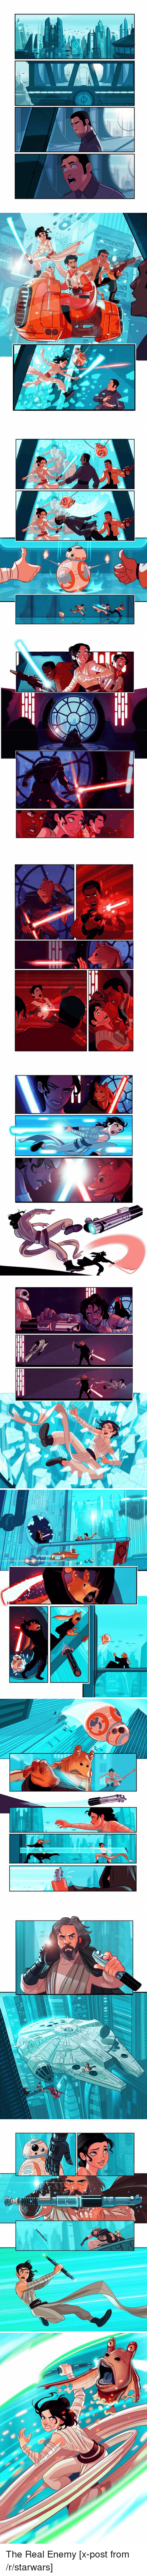 d and d: 4,ヨ   D and D   Enlisisalltila   脾   i i i i I I i II   凋   e  勺 The Real Enemy [x-post from /r/starwars]